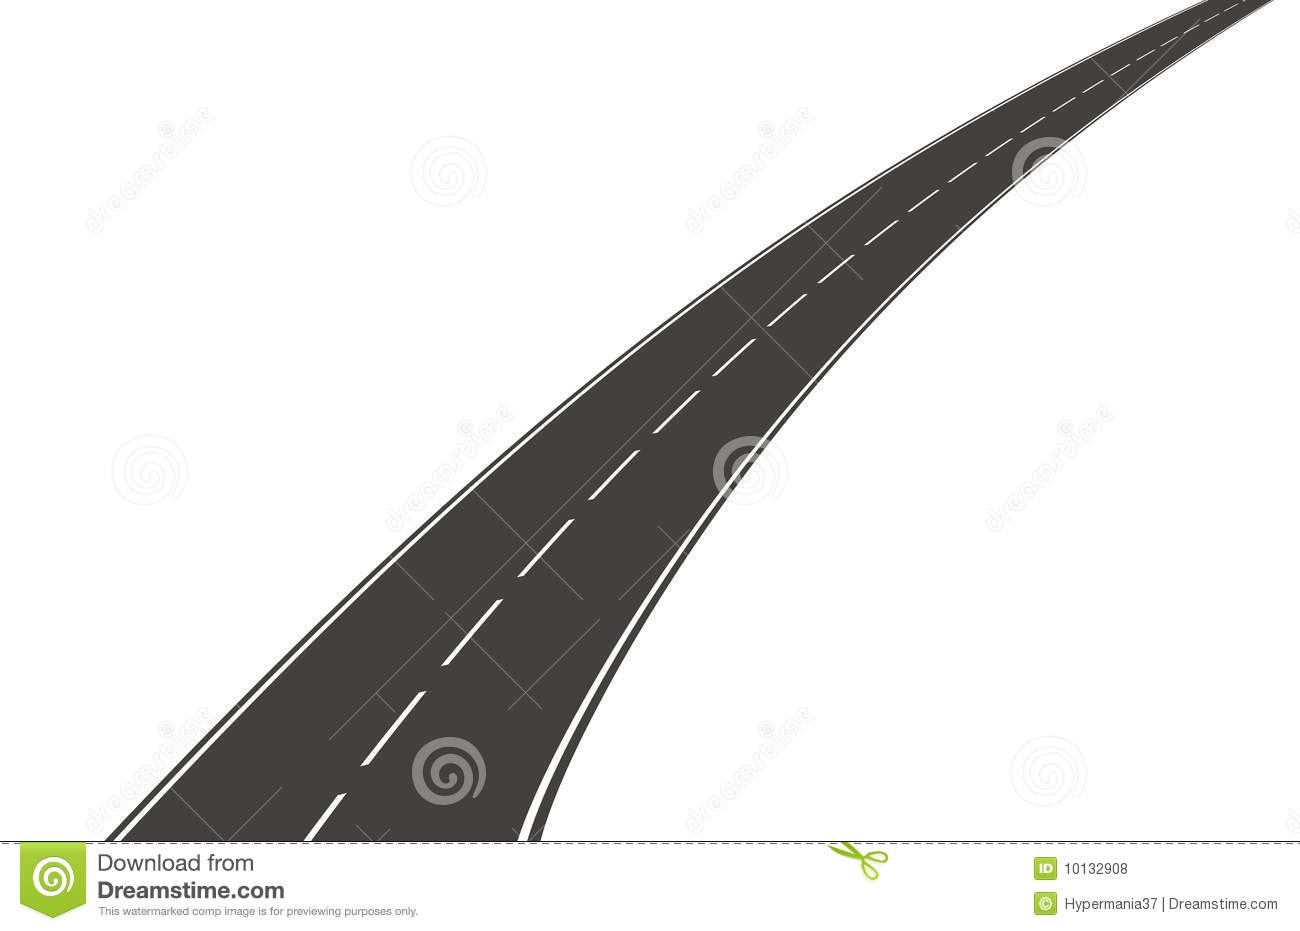 Pathway clipart curved street Kid clipart City png collections